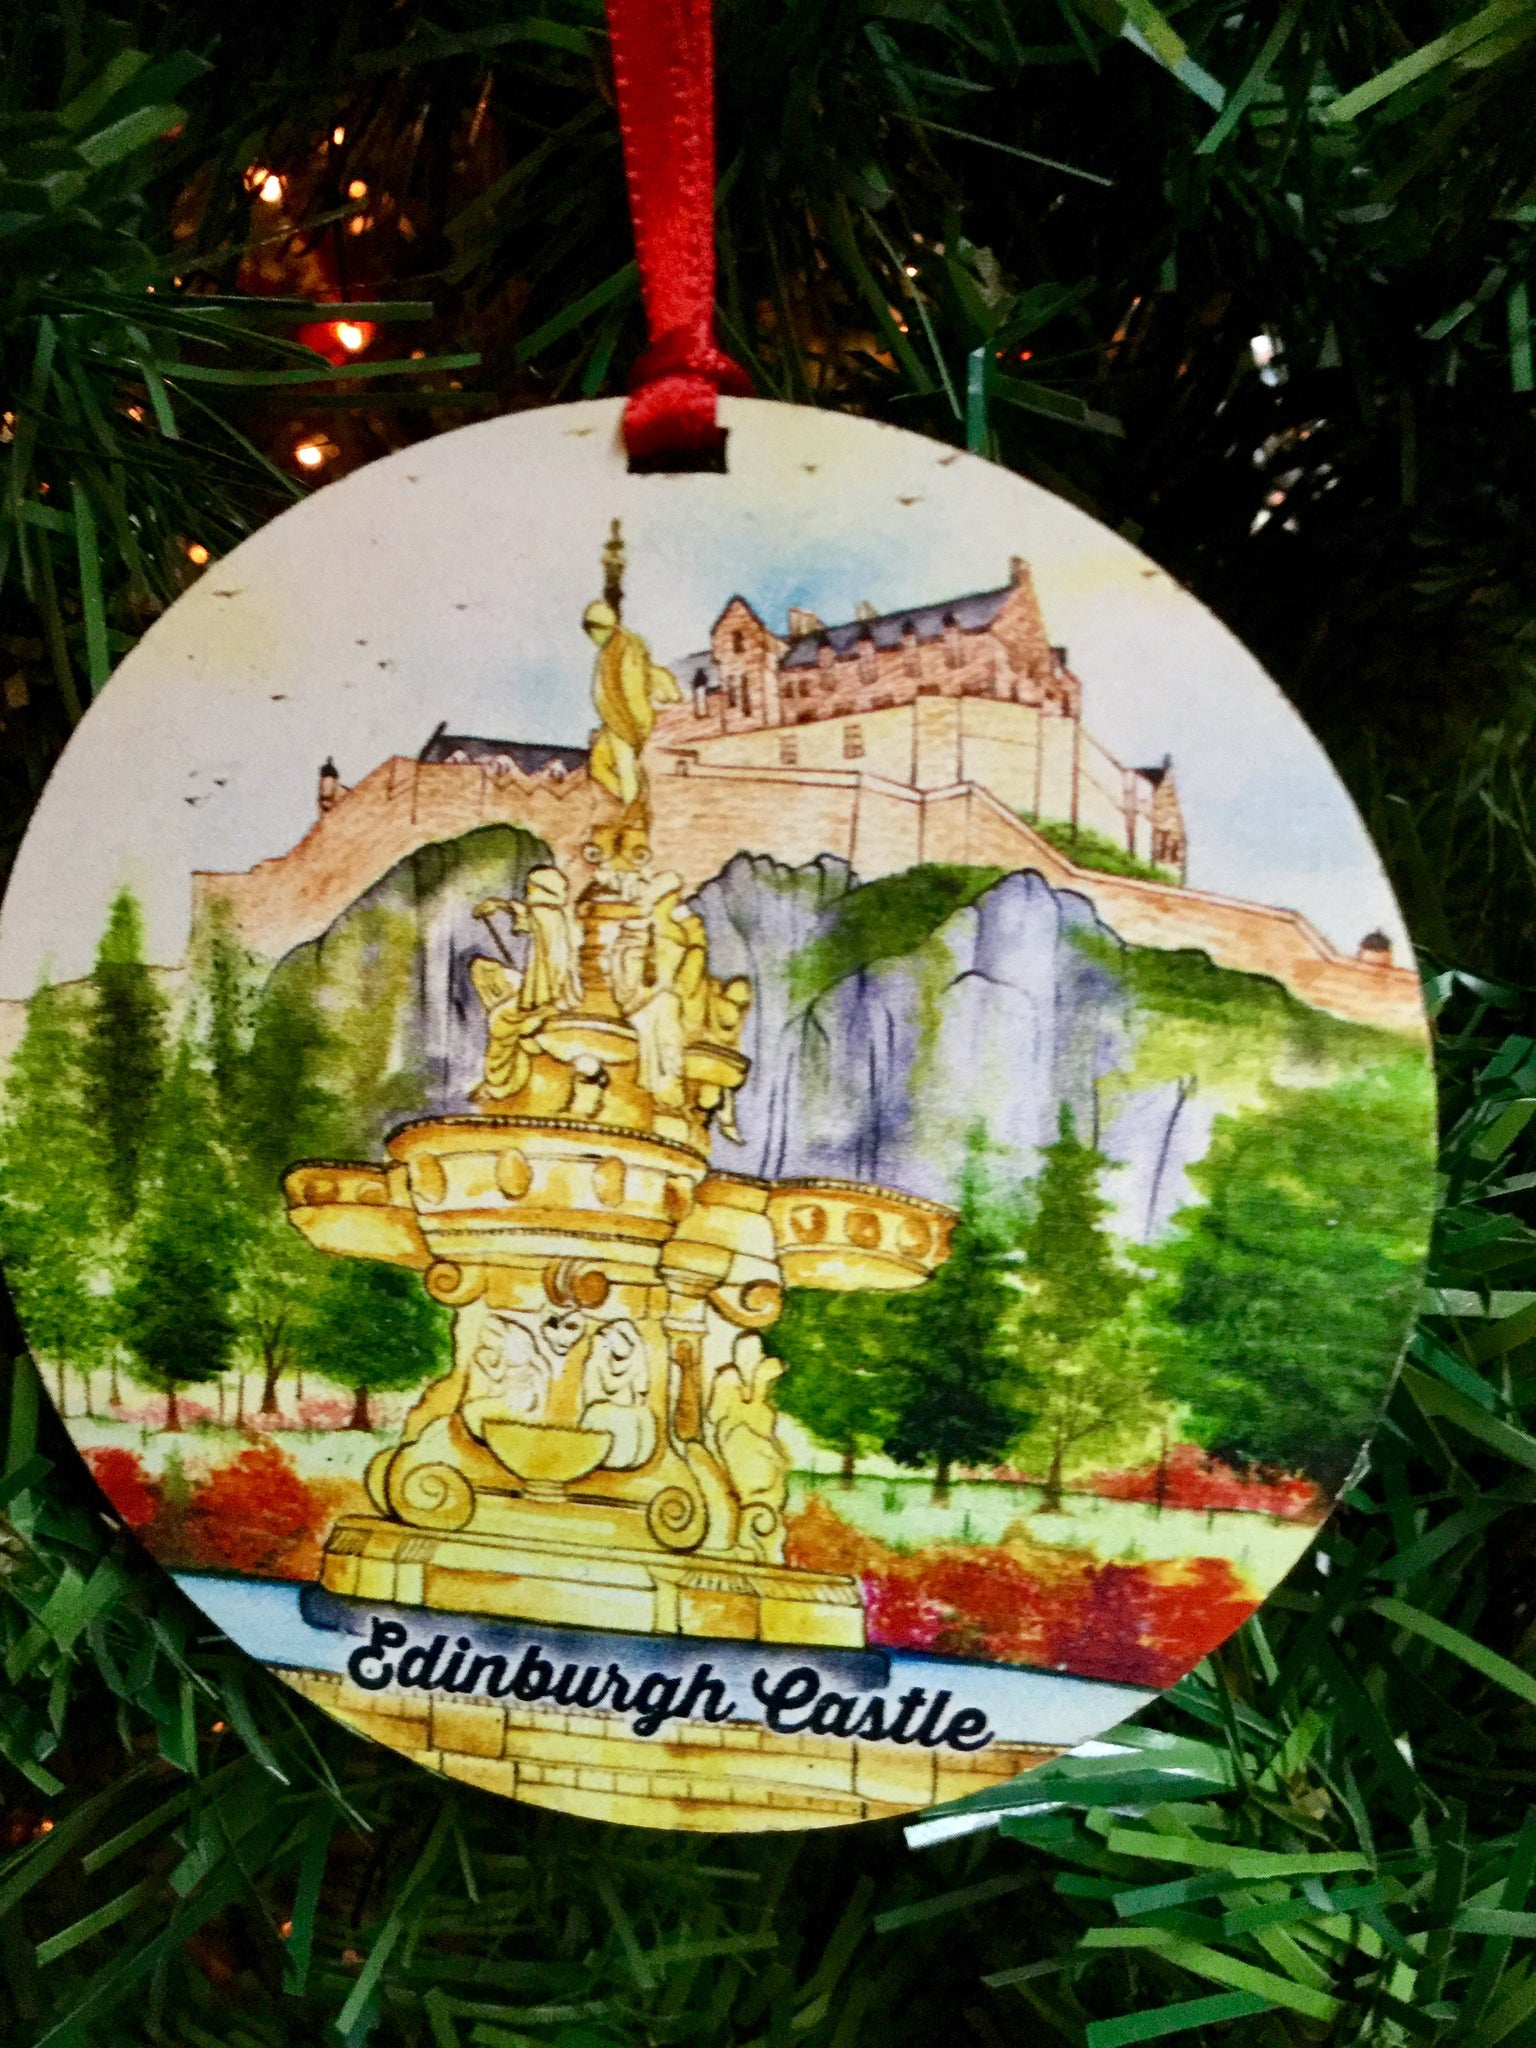 Edinburgh Castle Medallion